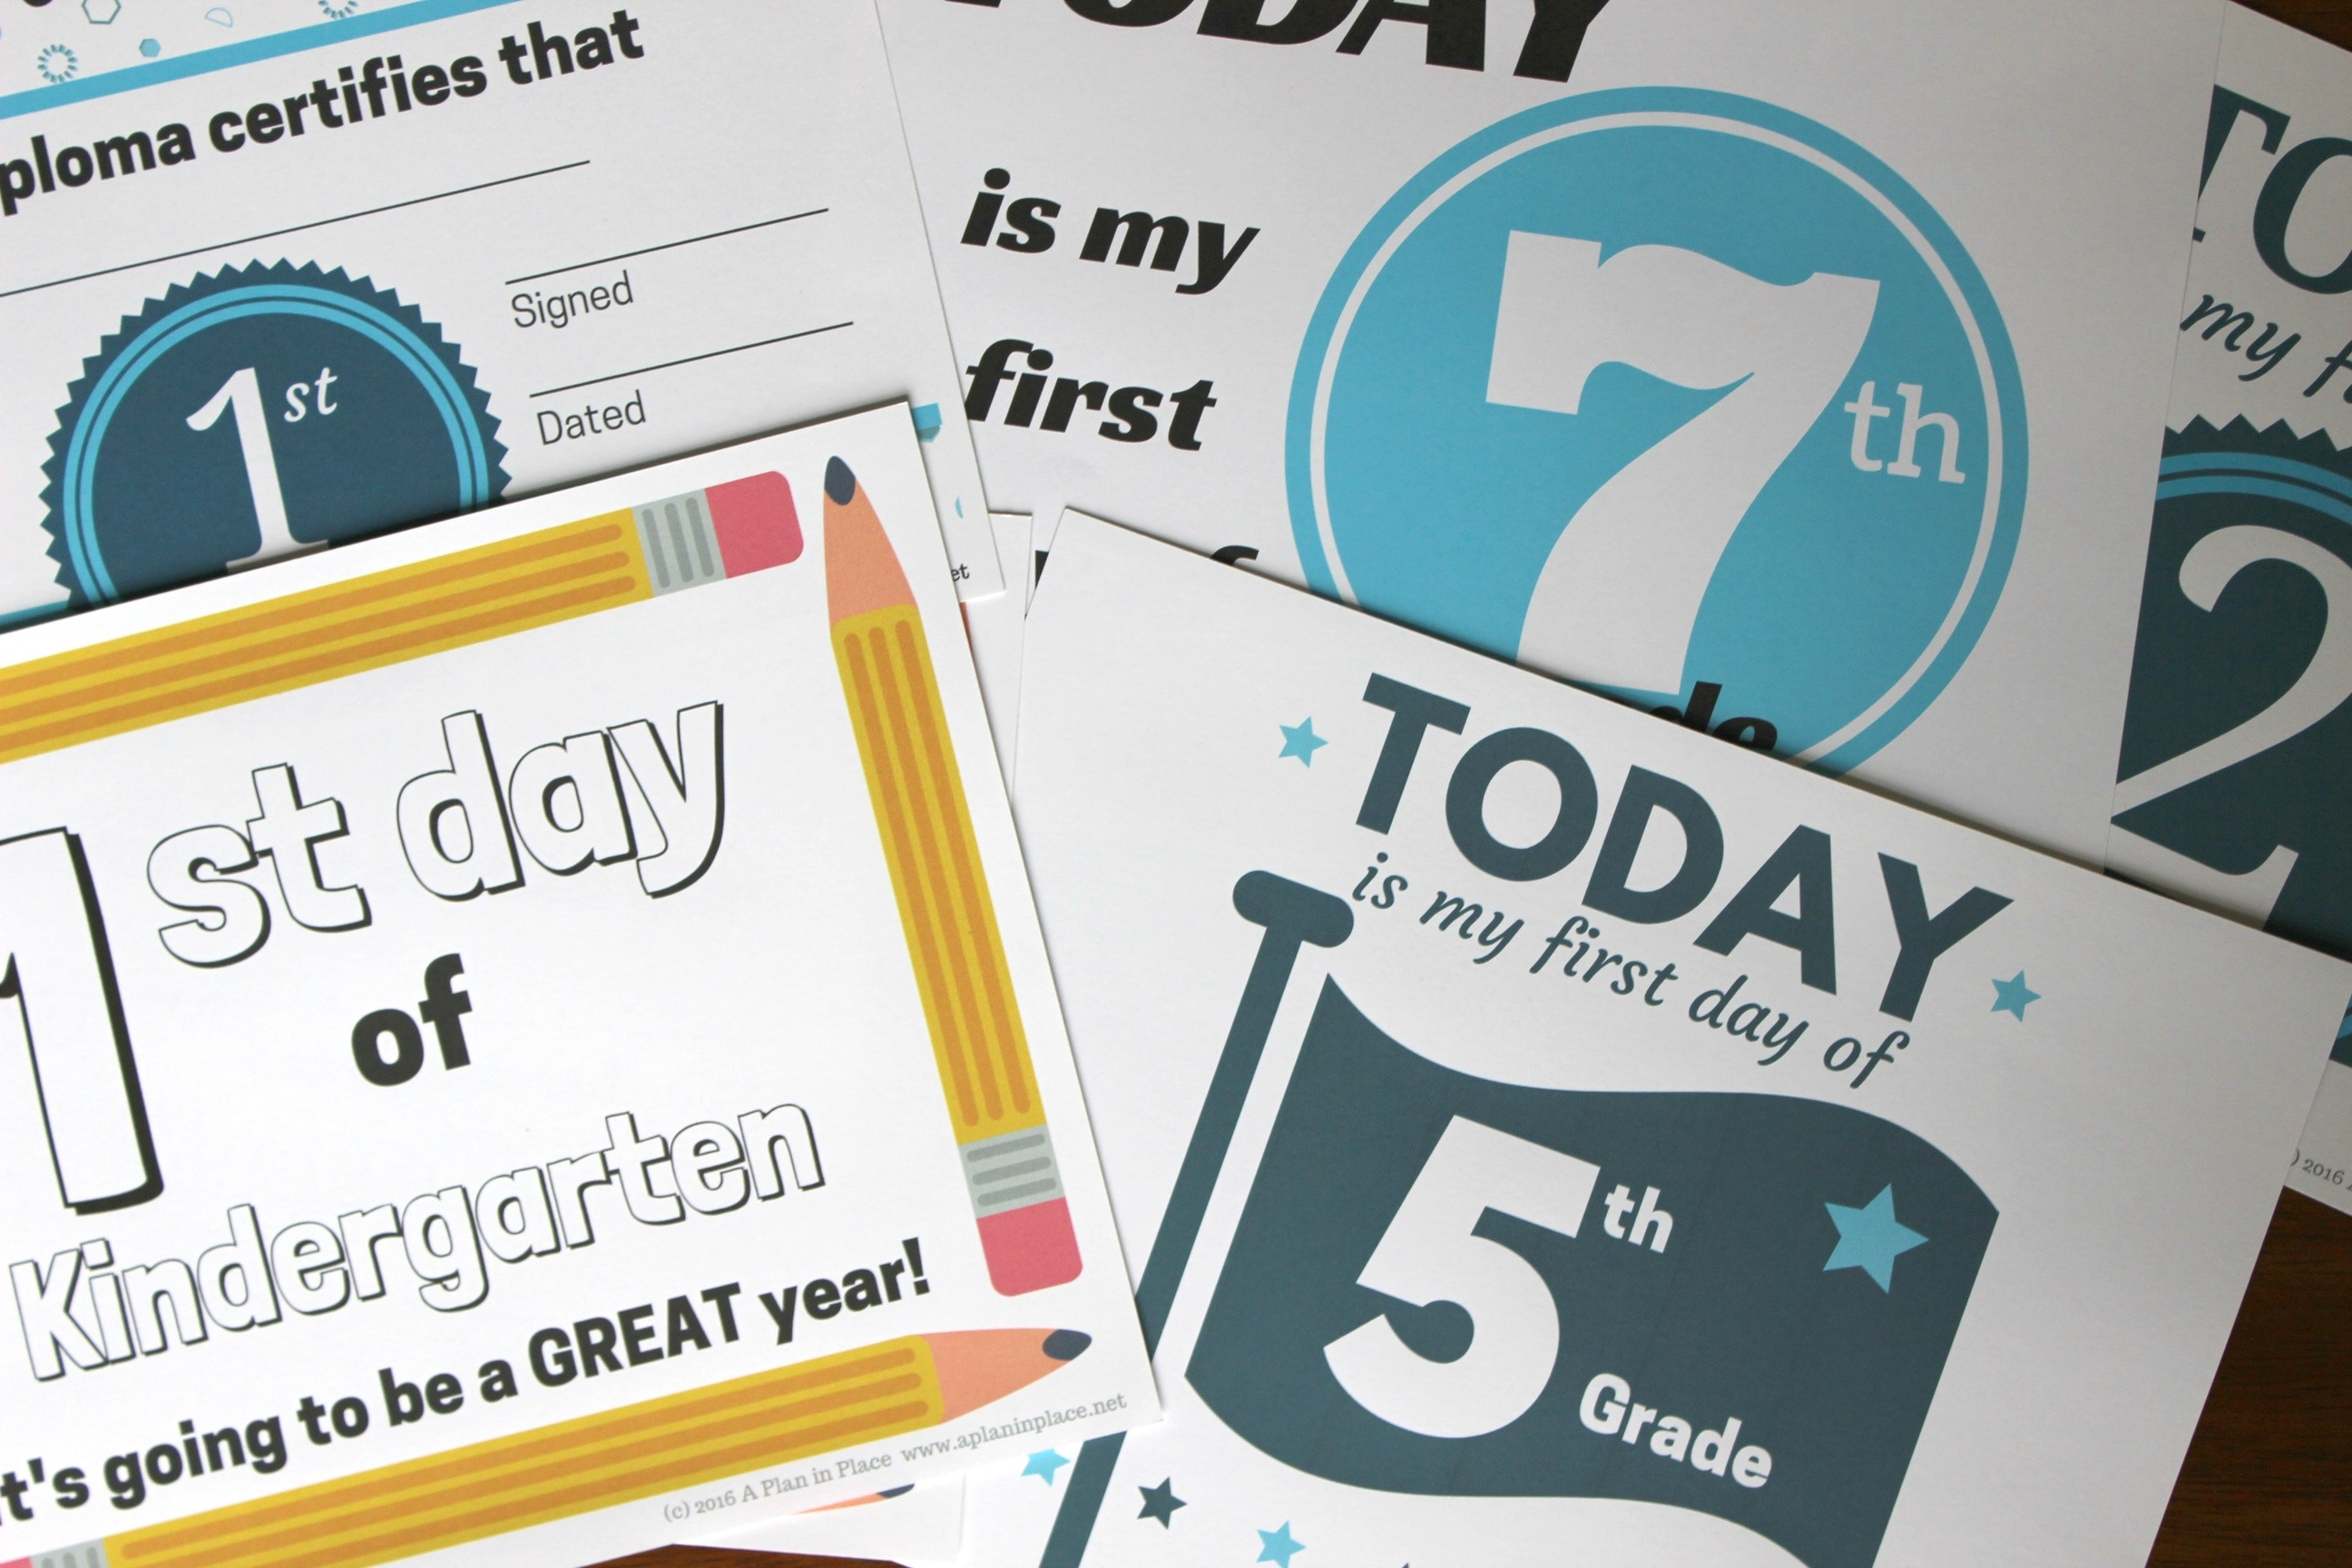 Printed Certificates | A Plan In Place - Free Printable First Day Of School Certificate